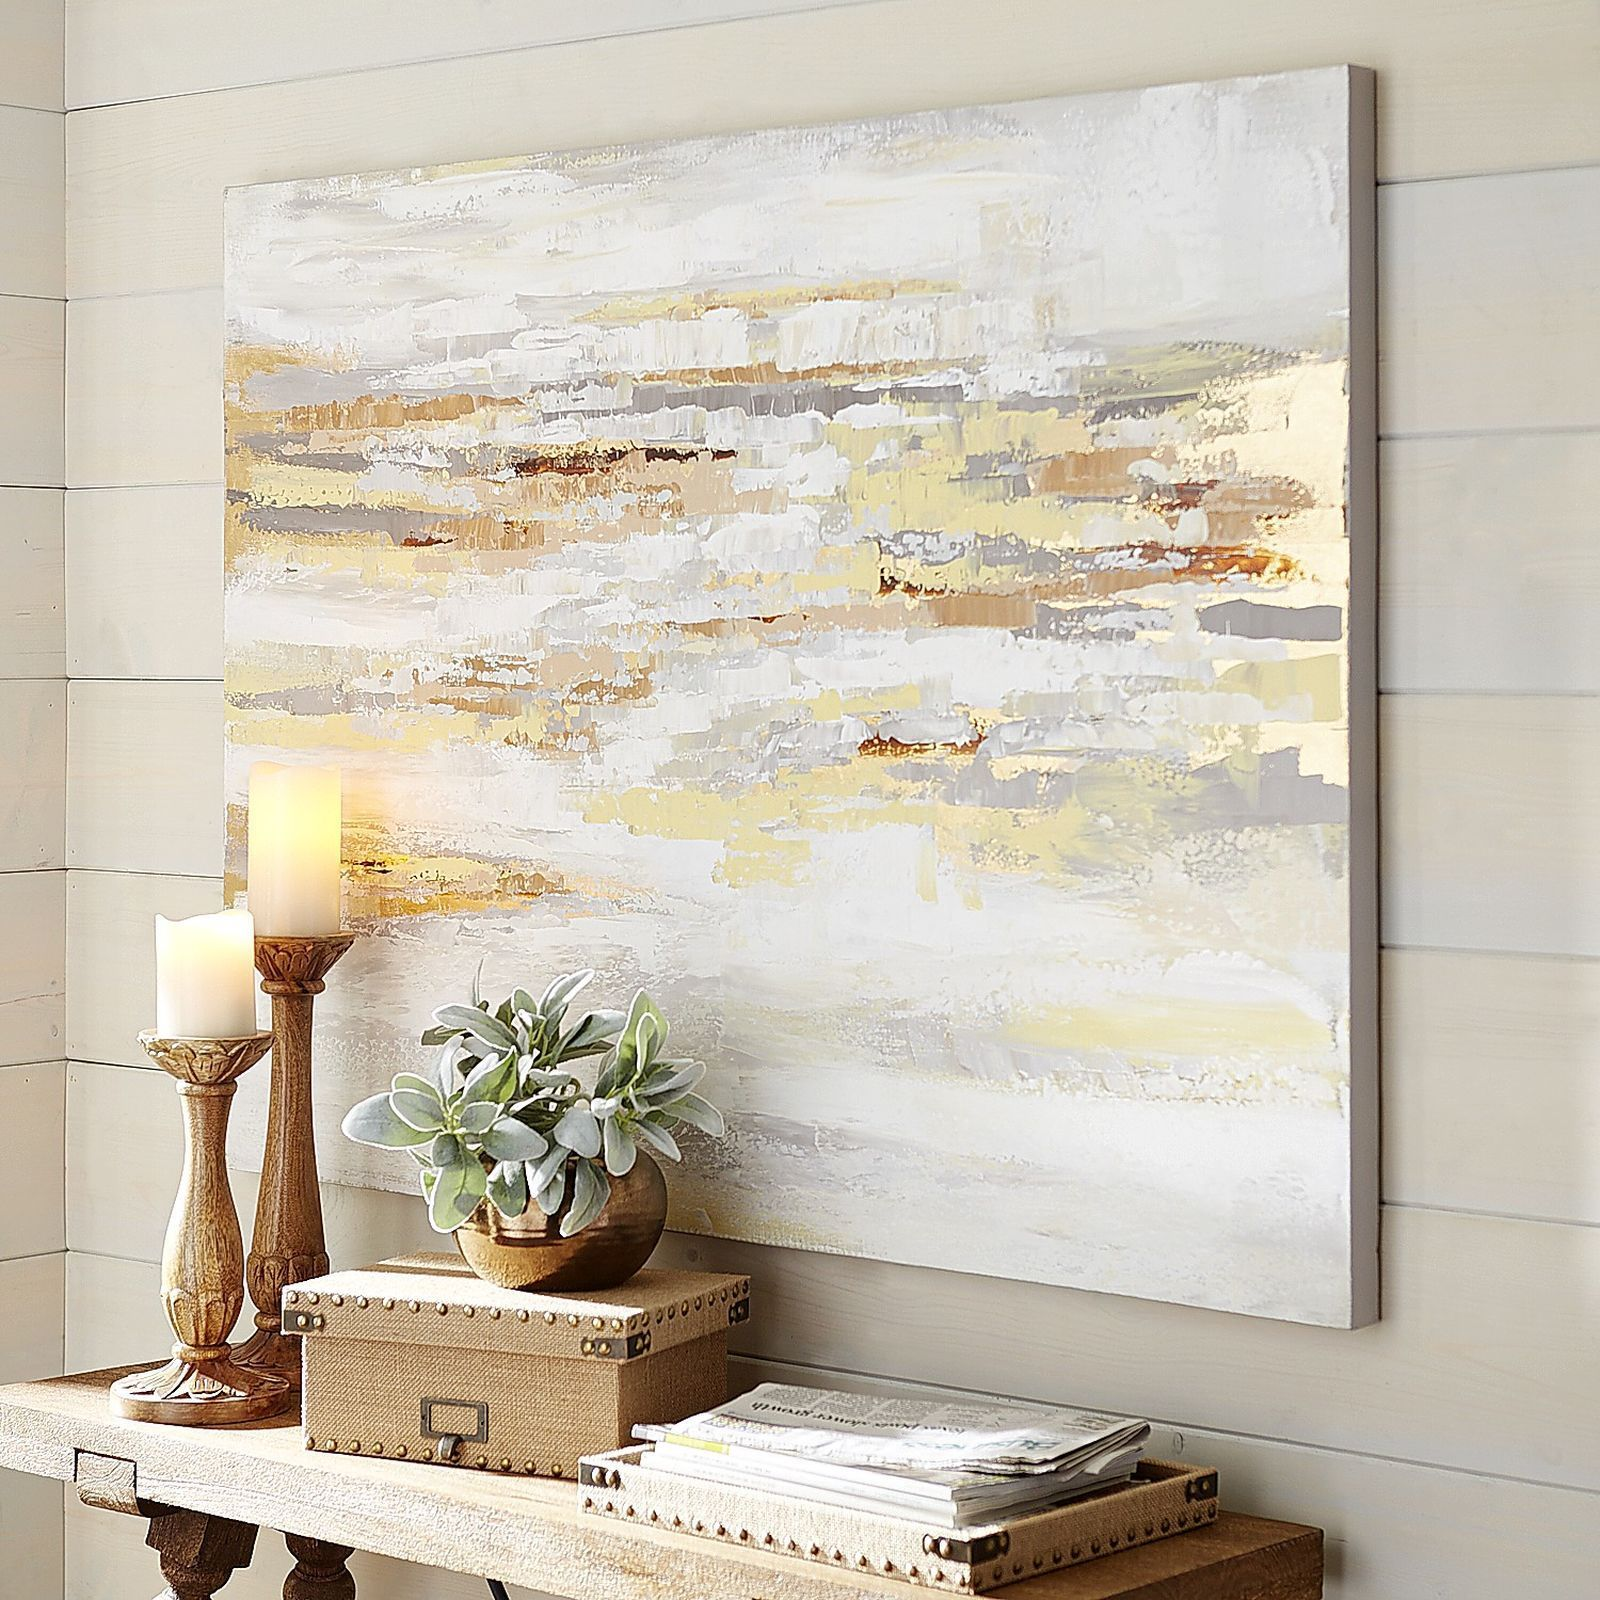 How To Make Modern Wall Art A Part Of Your Room Decor